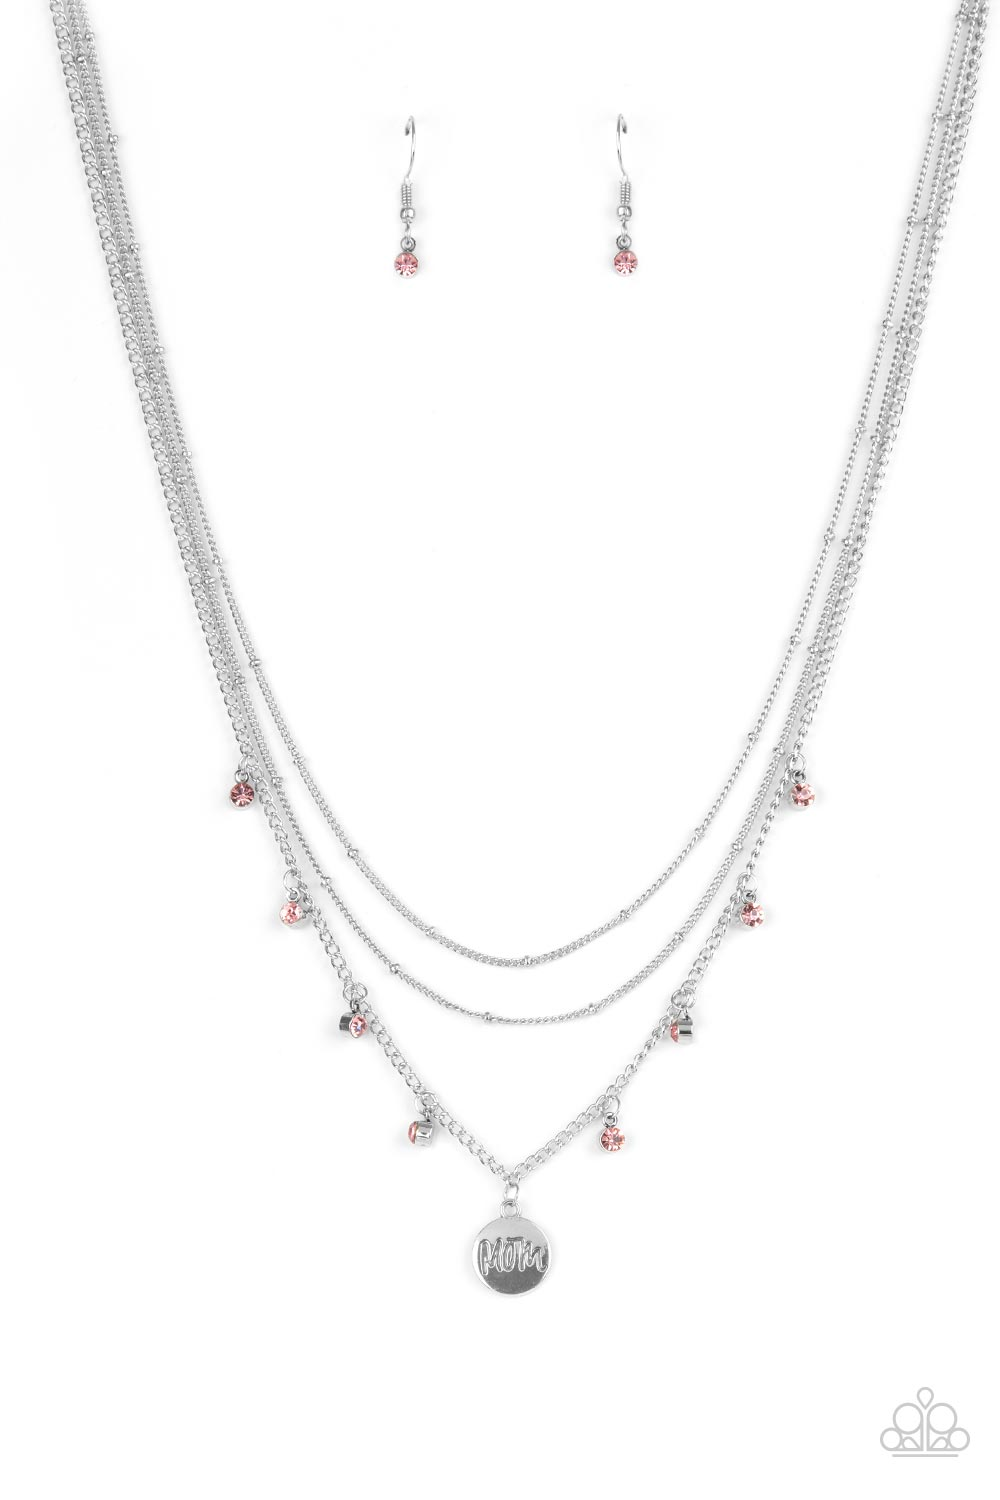 five-dollar-jewelry-ode-to-mom-pink-necklace-paparazzi-accessories